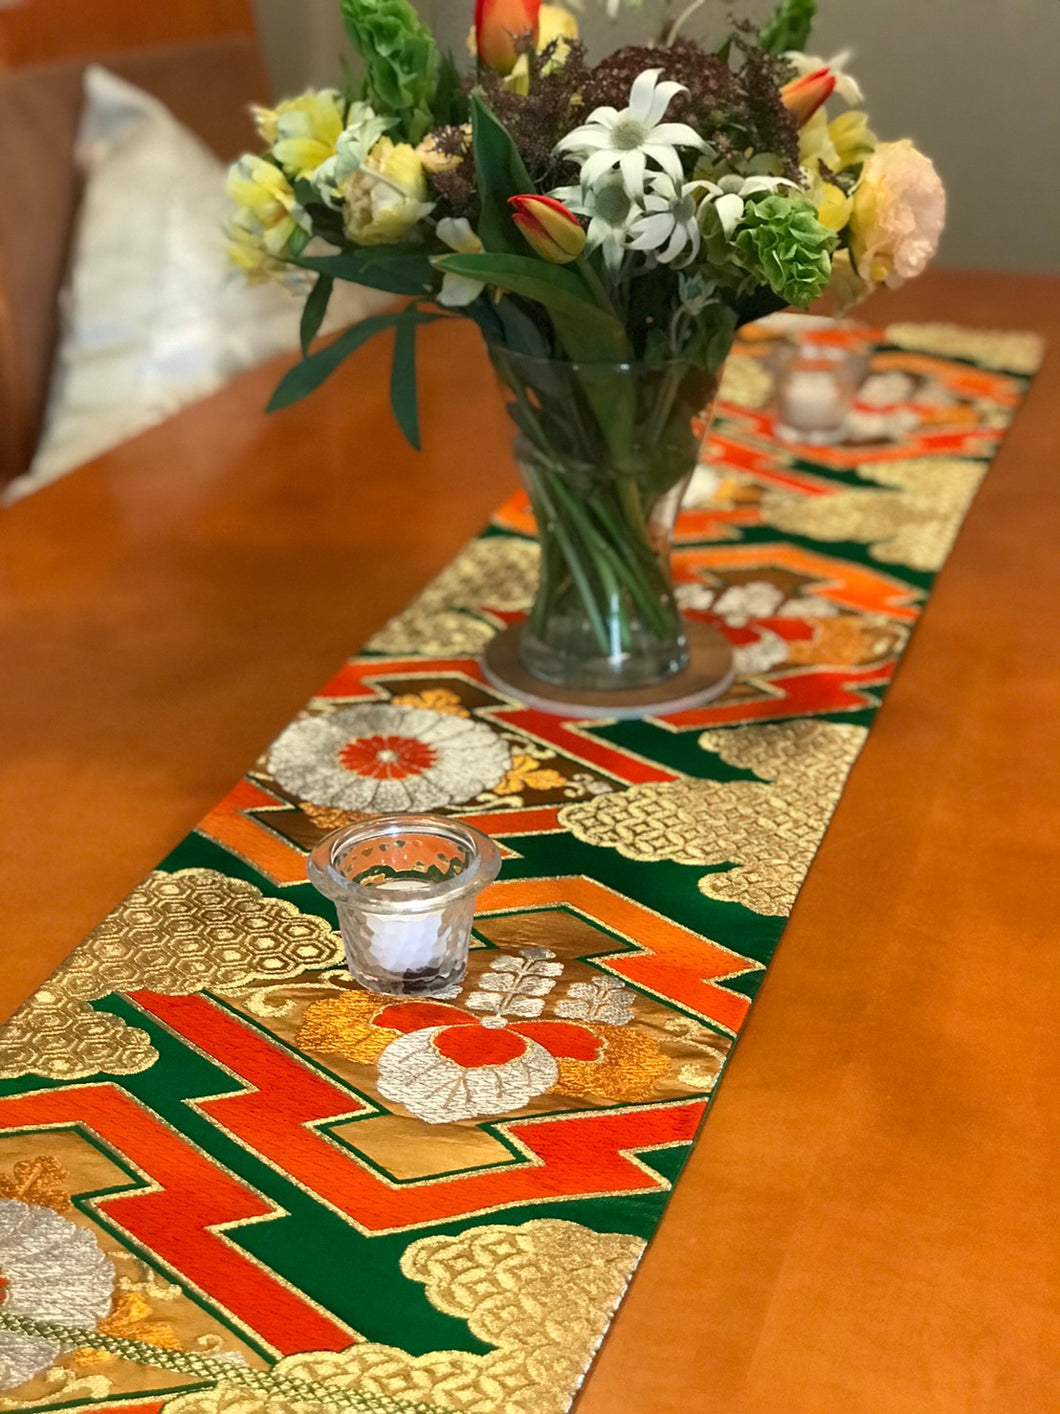 Table Runner Green-base, Matsukawabishi pattern with chrysanthemums and paulownia flowers (woven textile Obi)